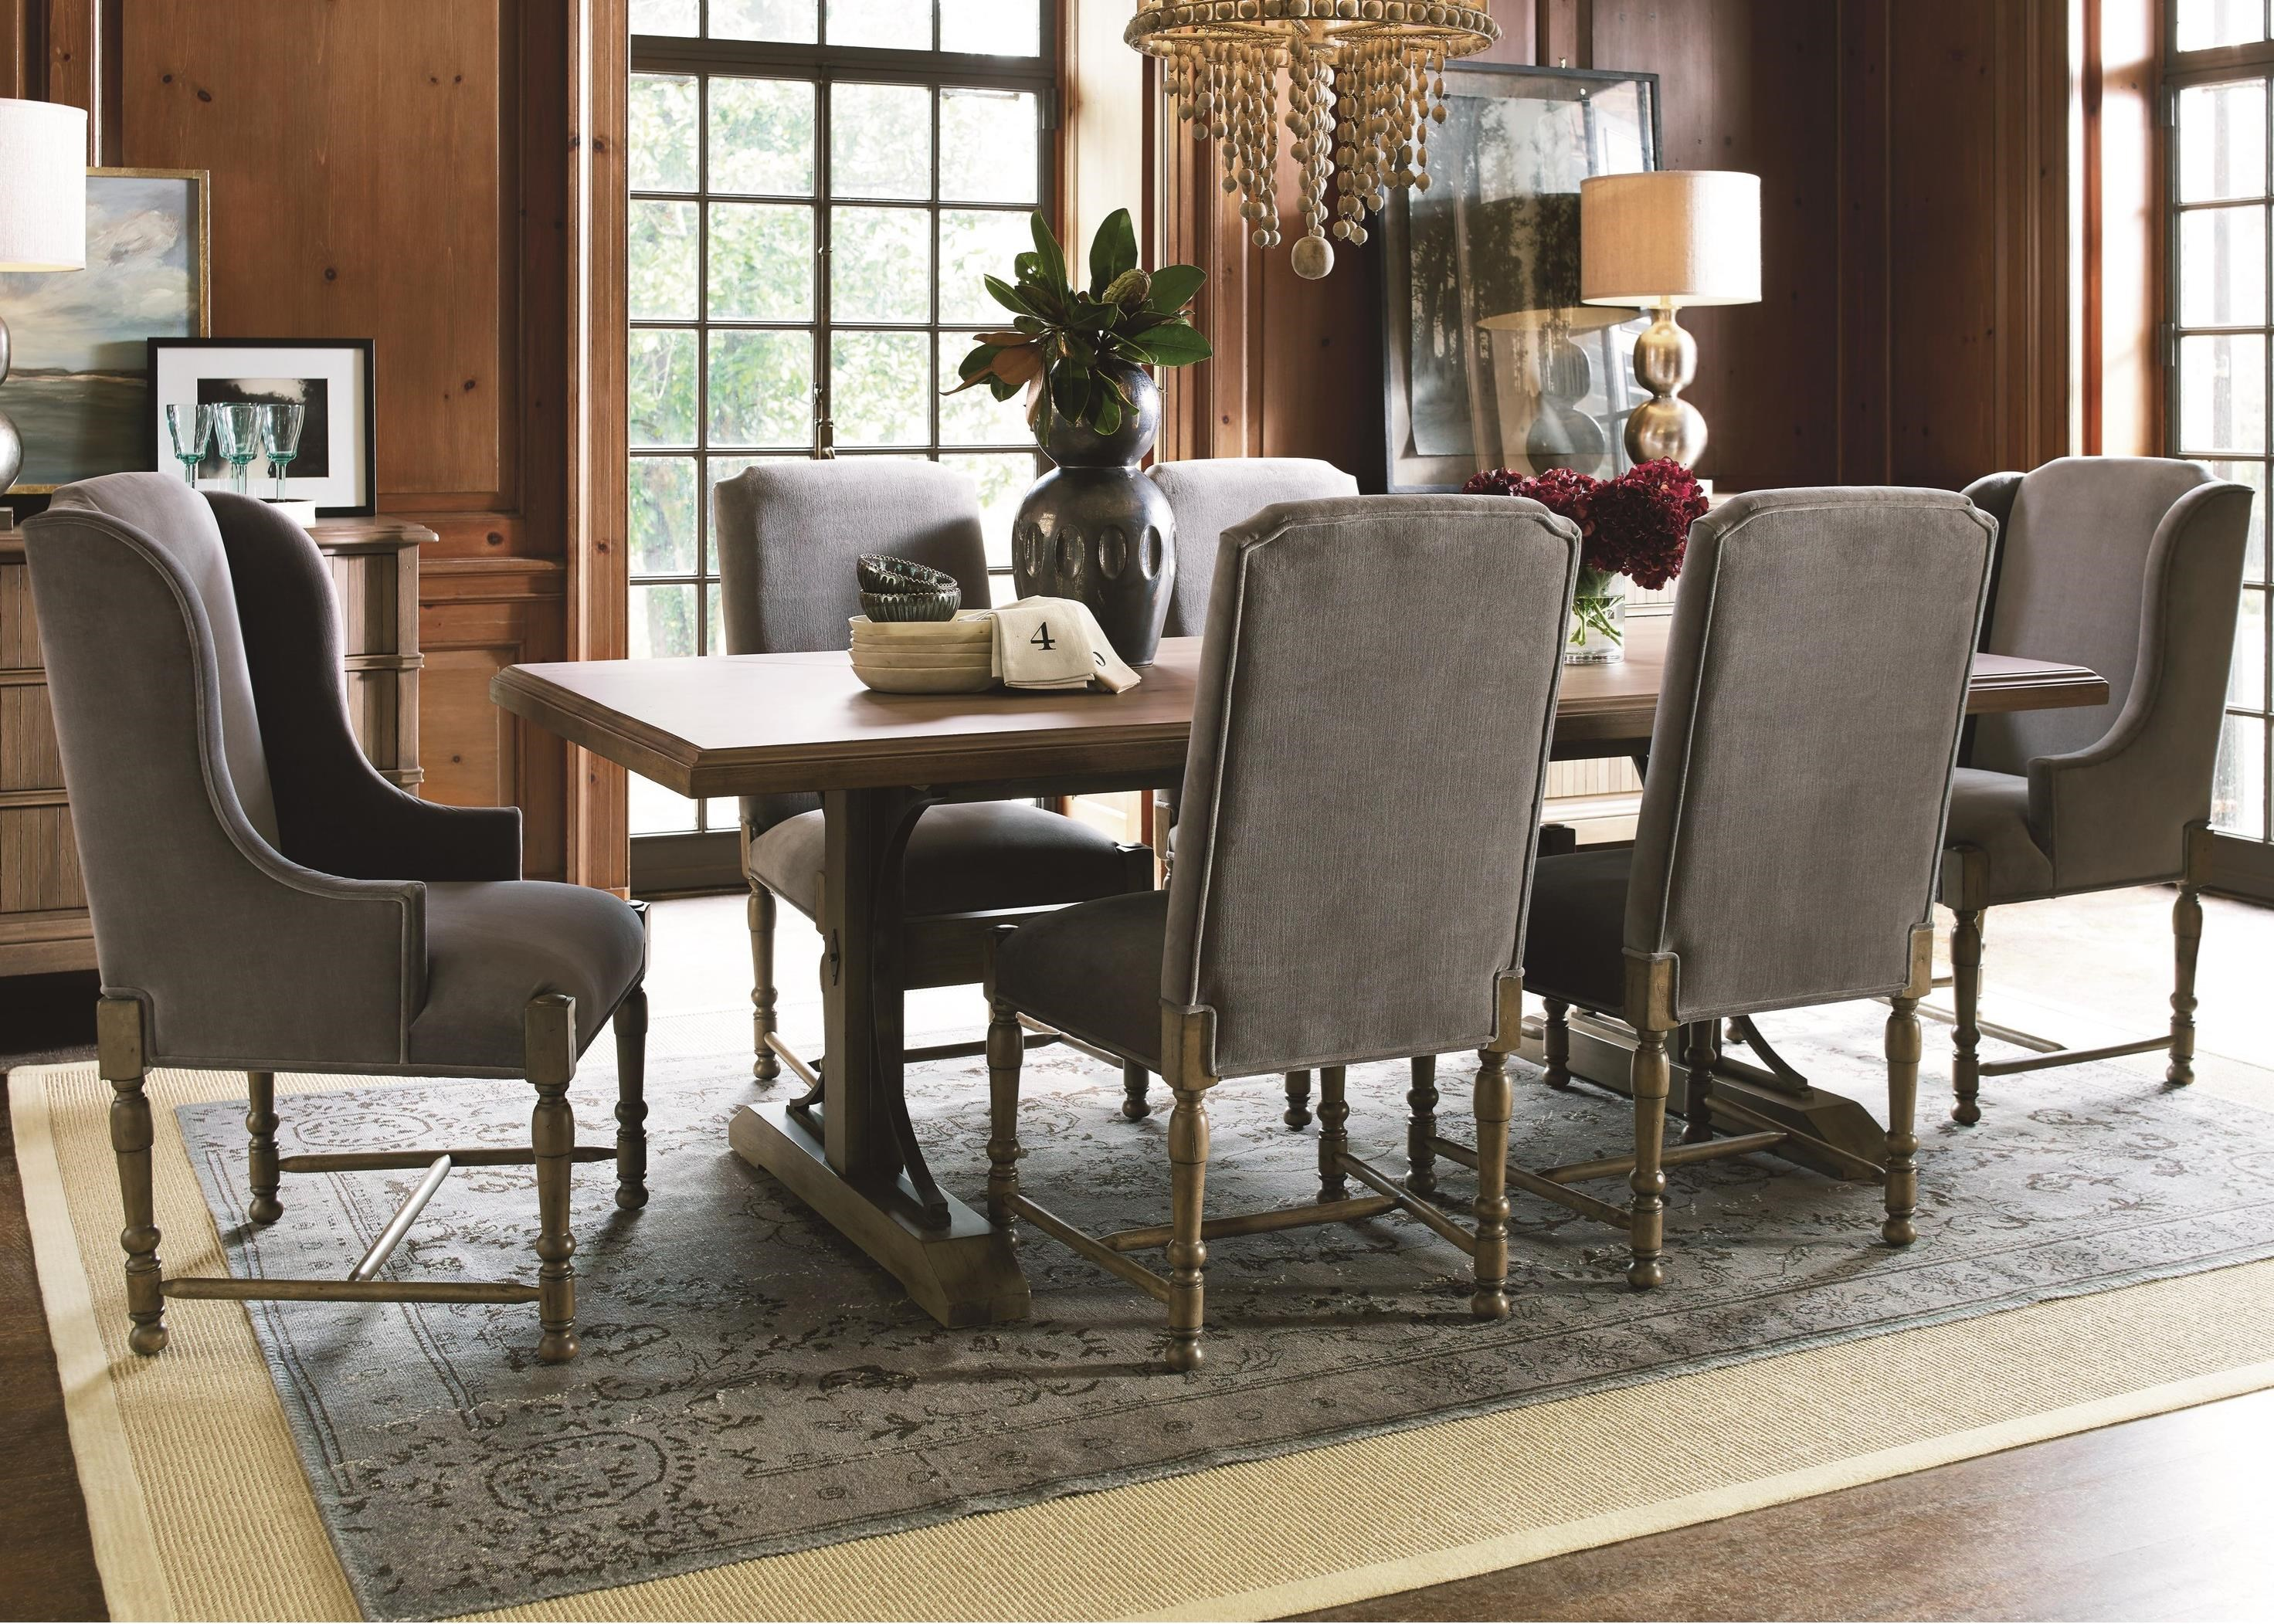 Universal Authenticity 7 Piece Table and Chair Set - Item Number: 572655+2x39-RTA+4x38-RTA